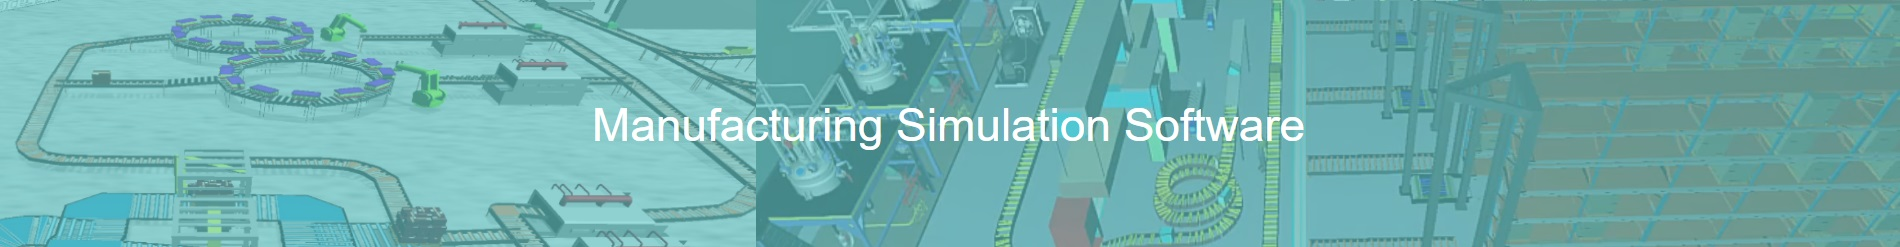 manufacturing simulation - manufacturing simulation software